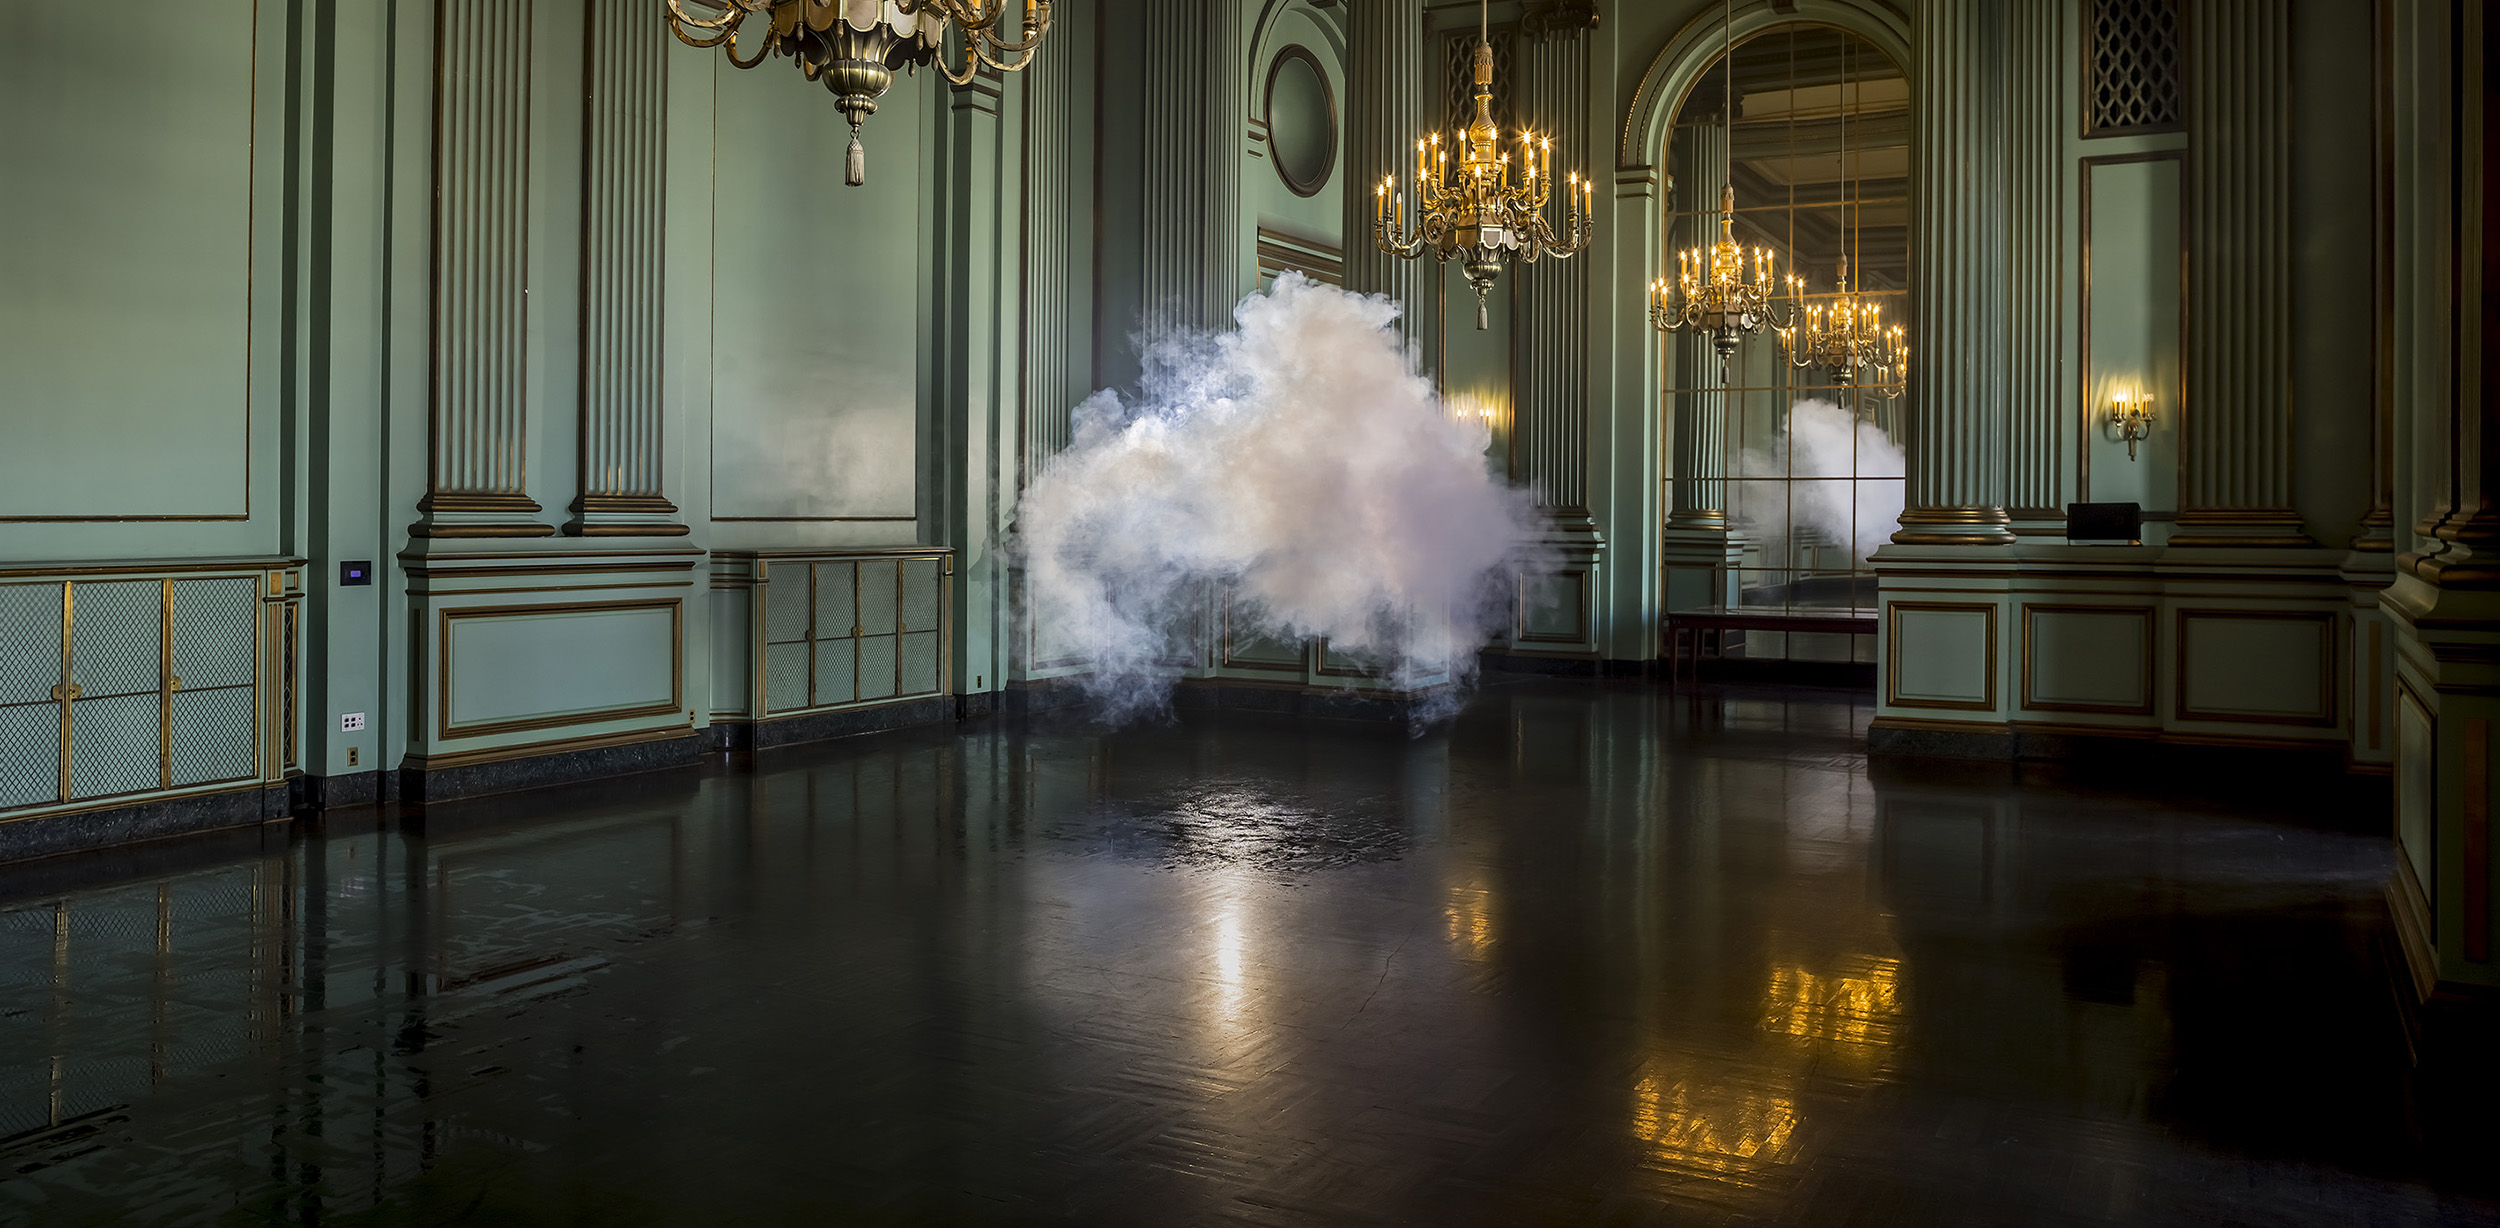 Berndnaut Smilde S Ethereal Clouds To Take Over The Armory